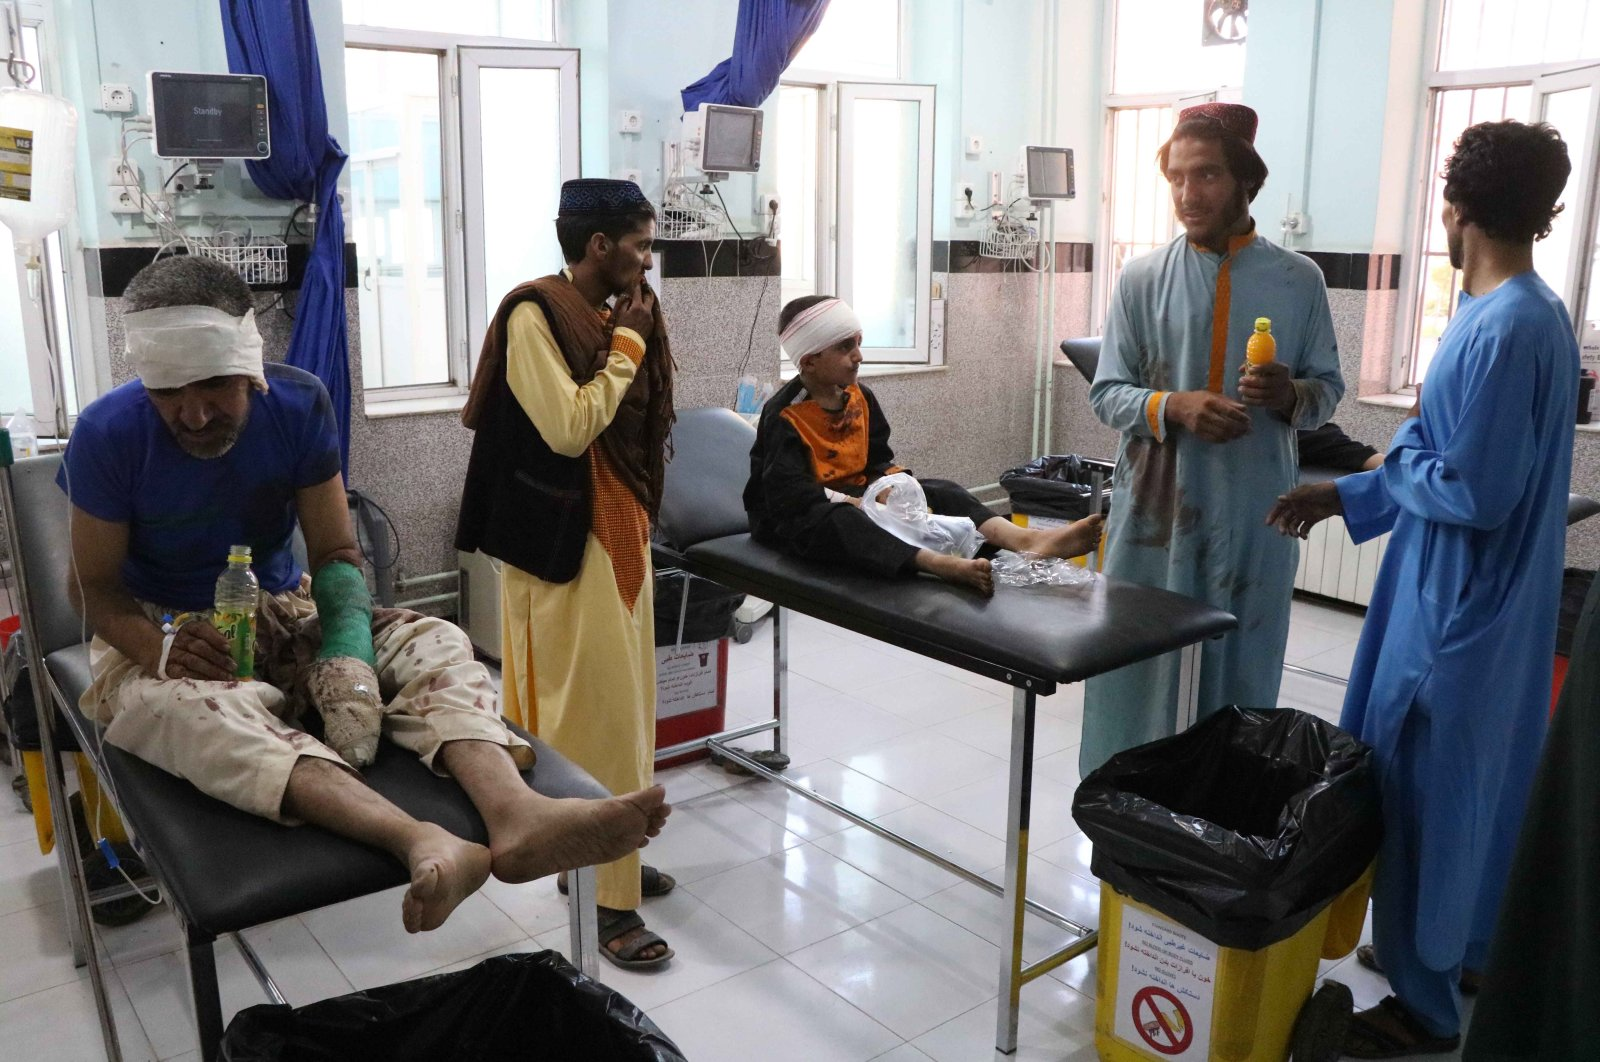 People who were injured in an alleged airstrike by Afghan security forces on suspected Taliban hideouts in Gozara district, receive medical treatment after they were brought to a hospital in Herat, Afghanistan, July 22, 2020. (EPA Photo)